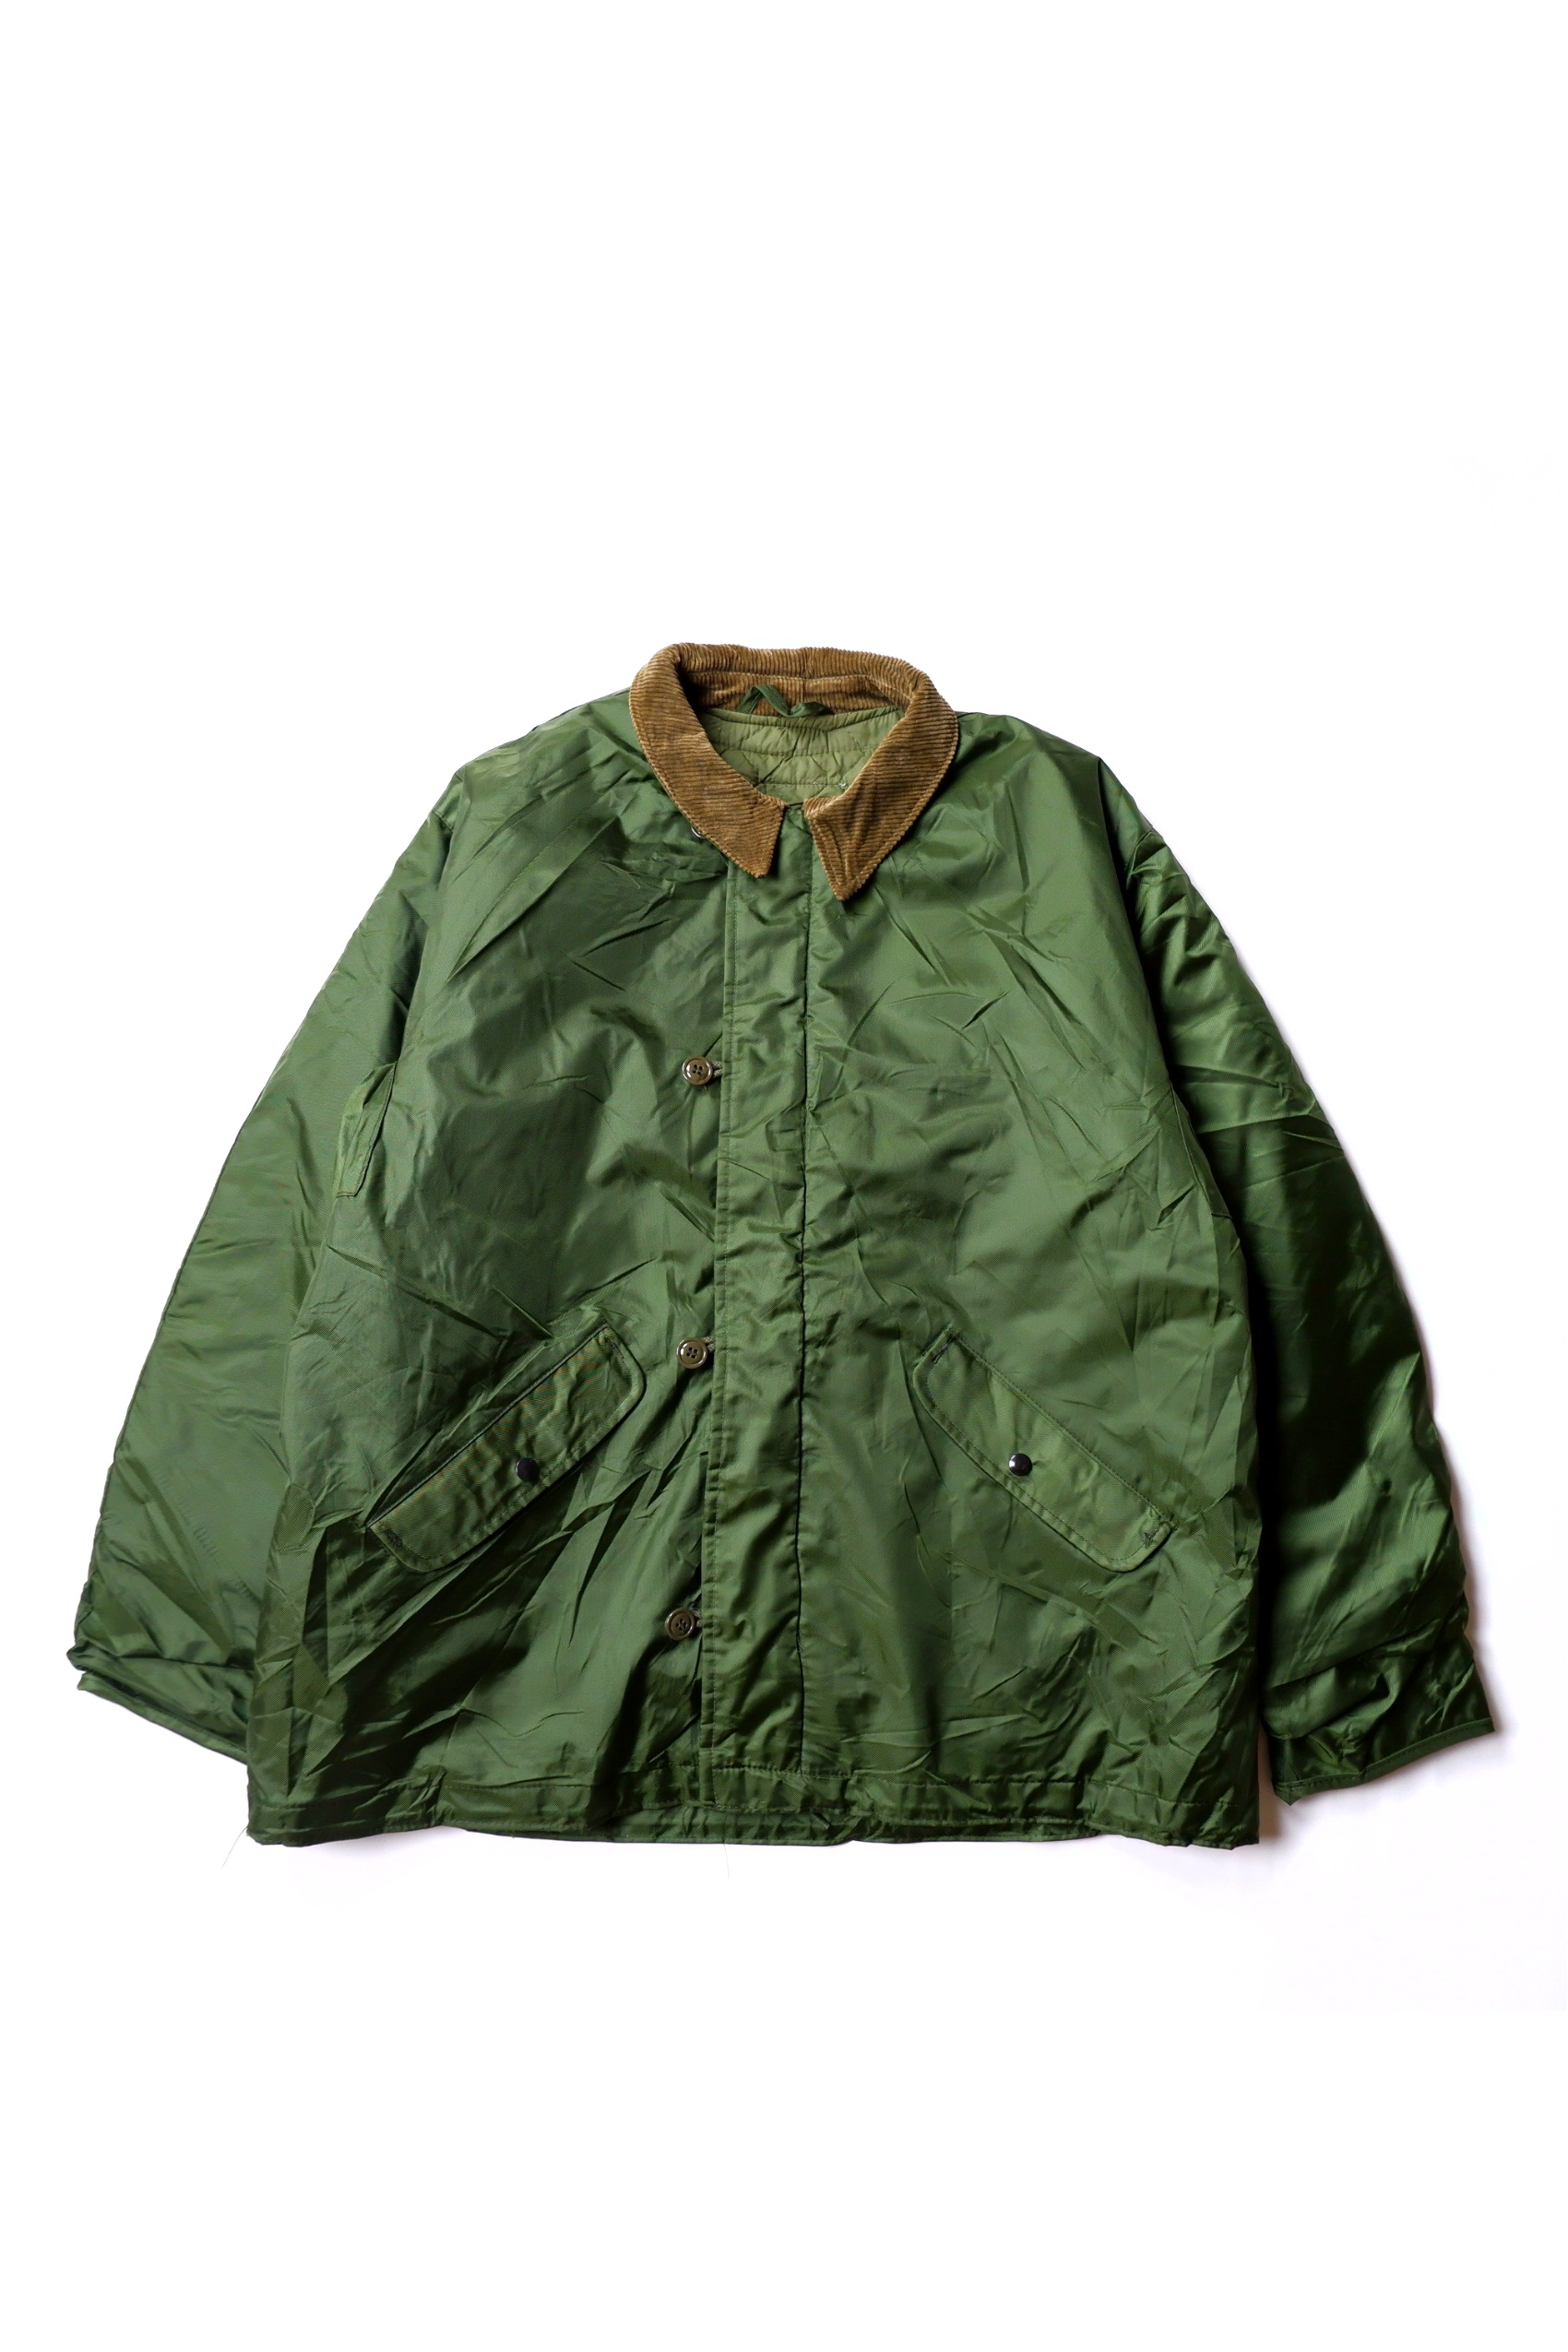 Vintage Military Extreme Weather Impermeable Jacket